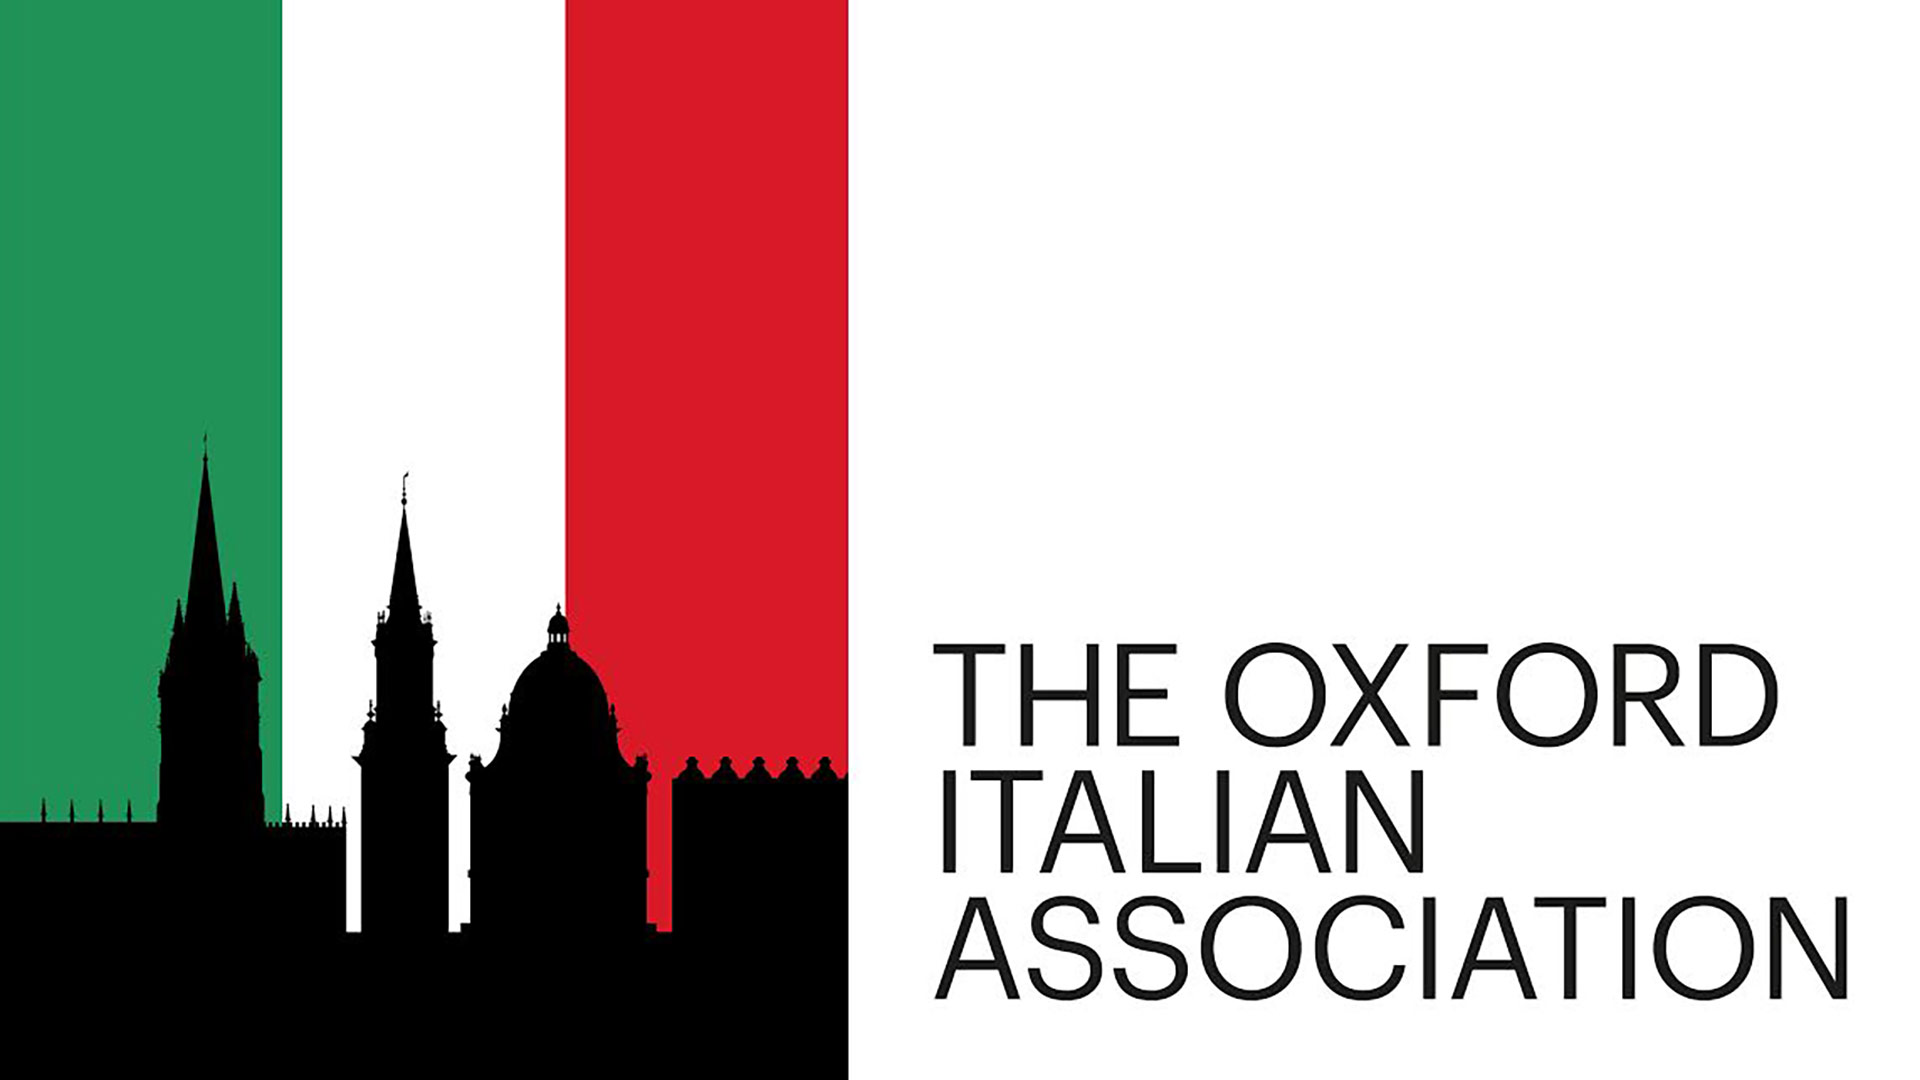 The Oxford Italian Association